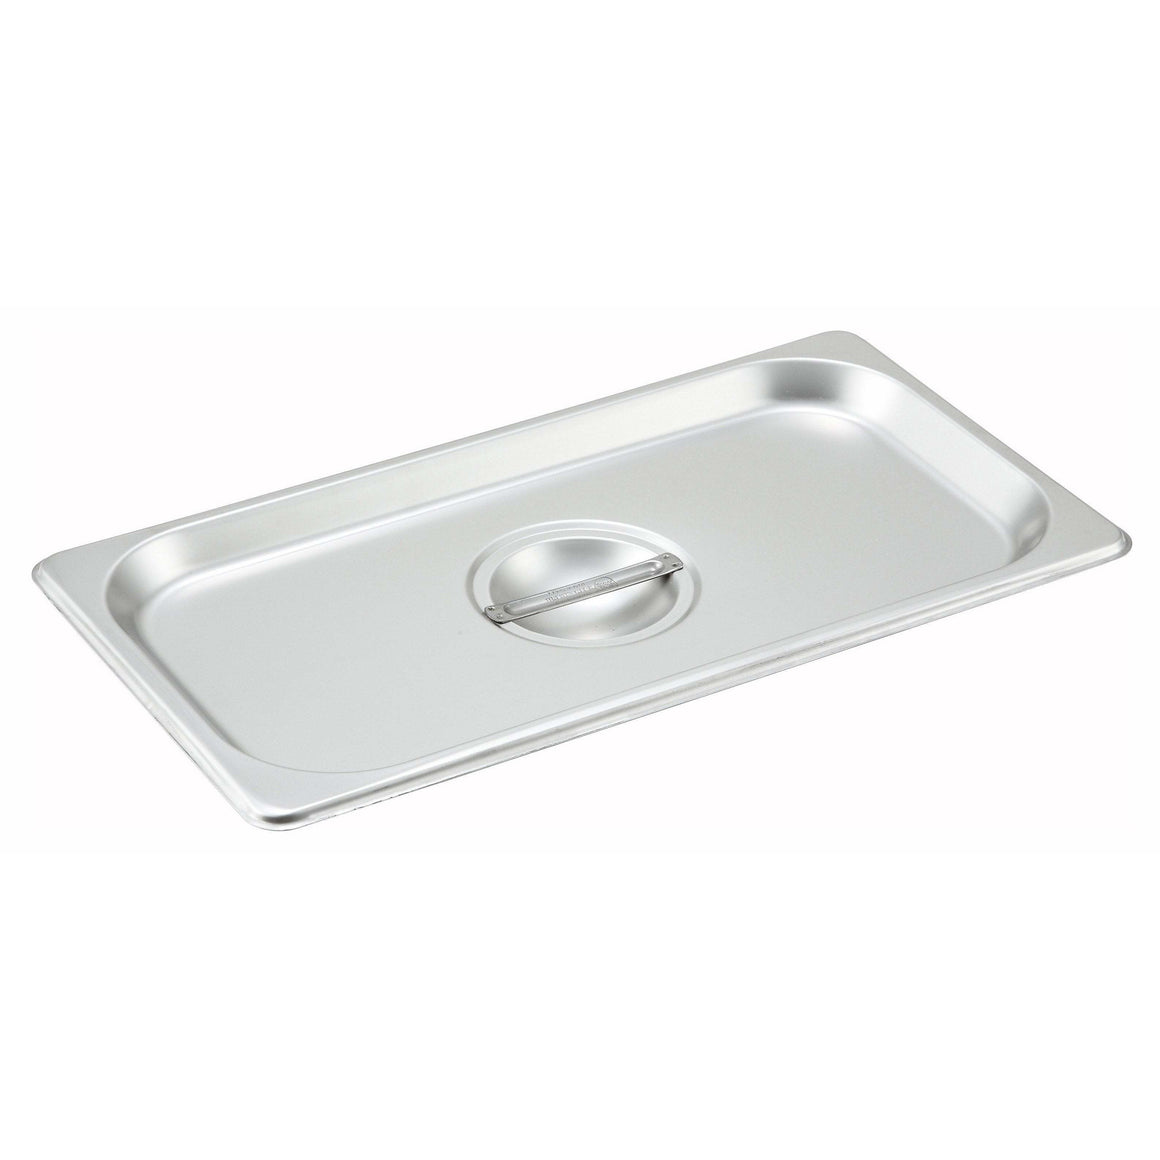 Winco - SPSCT - Stainless Steel Steam Pan Cover, 1/3 Size, Solid - Steam Table